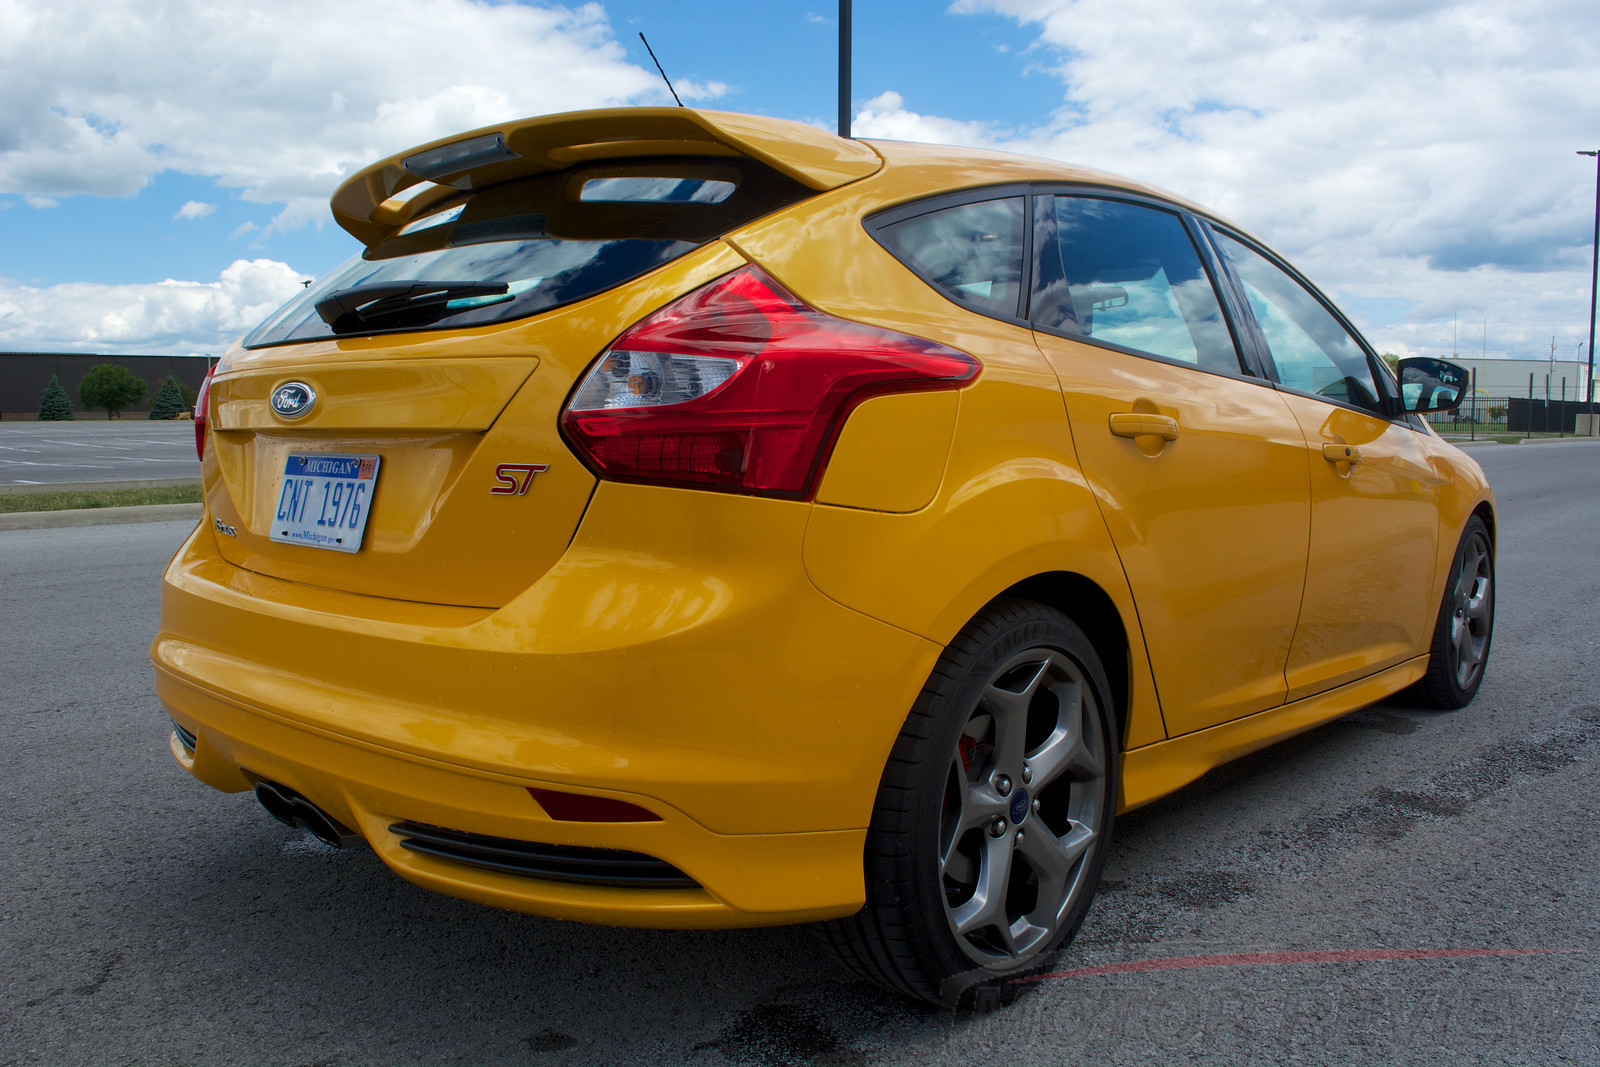 2014 Ford Focus St Review 4 Motor Review